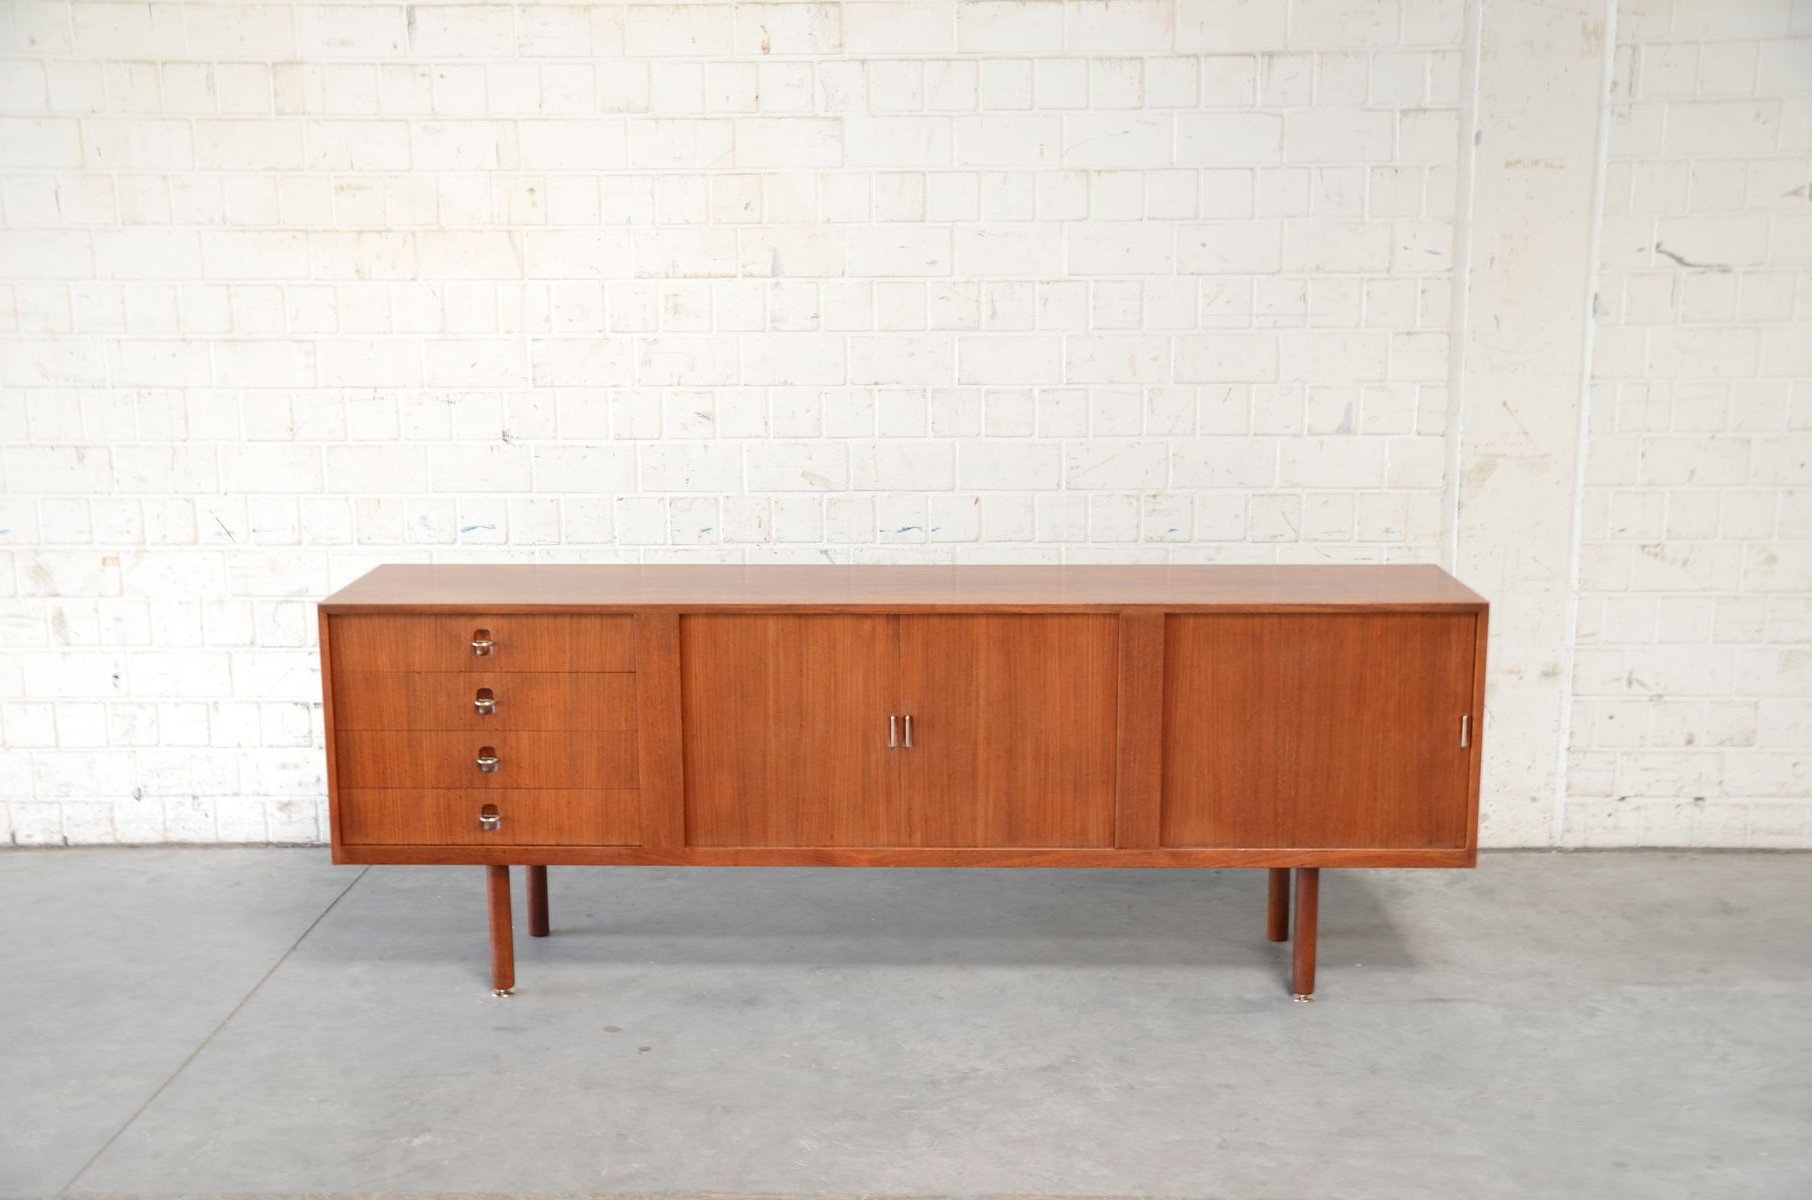 Vintage Danish Teak & Brass Sideboard With Tambour Doors For Sale At Within Favorite Aged Brass Sideboards (Gallery 6 of 20)